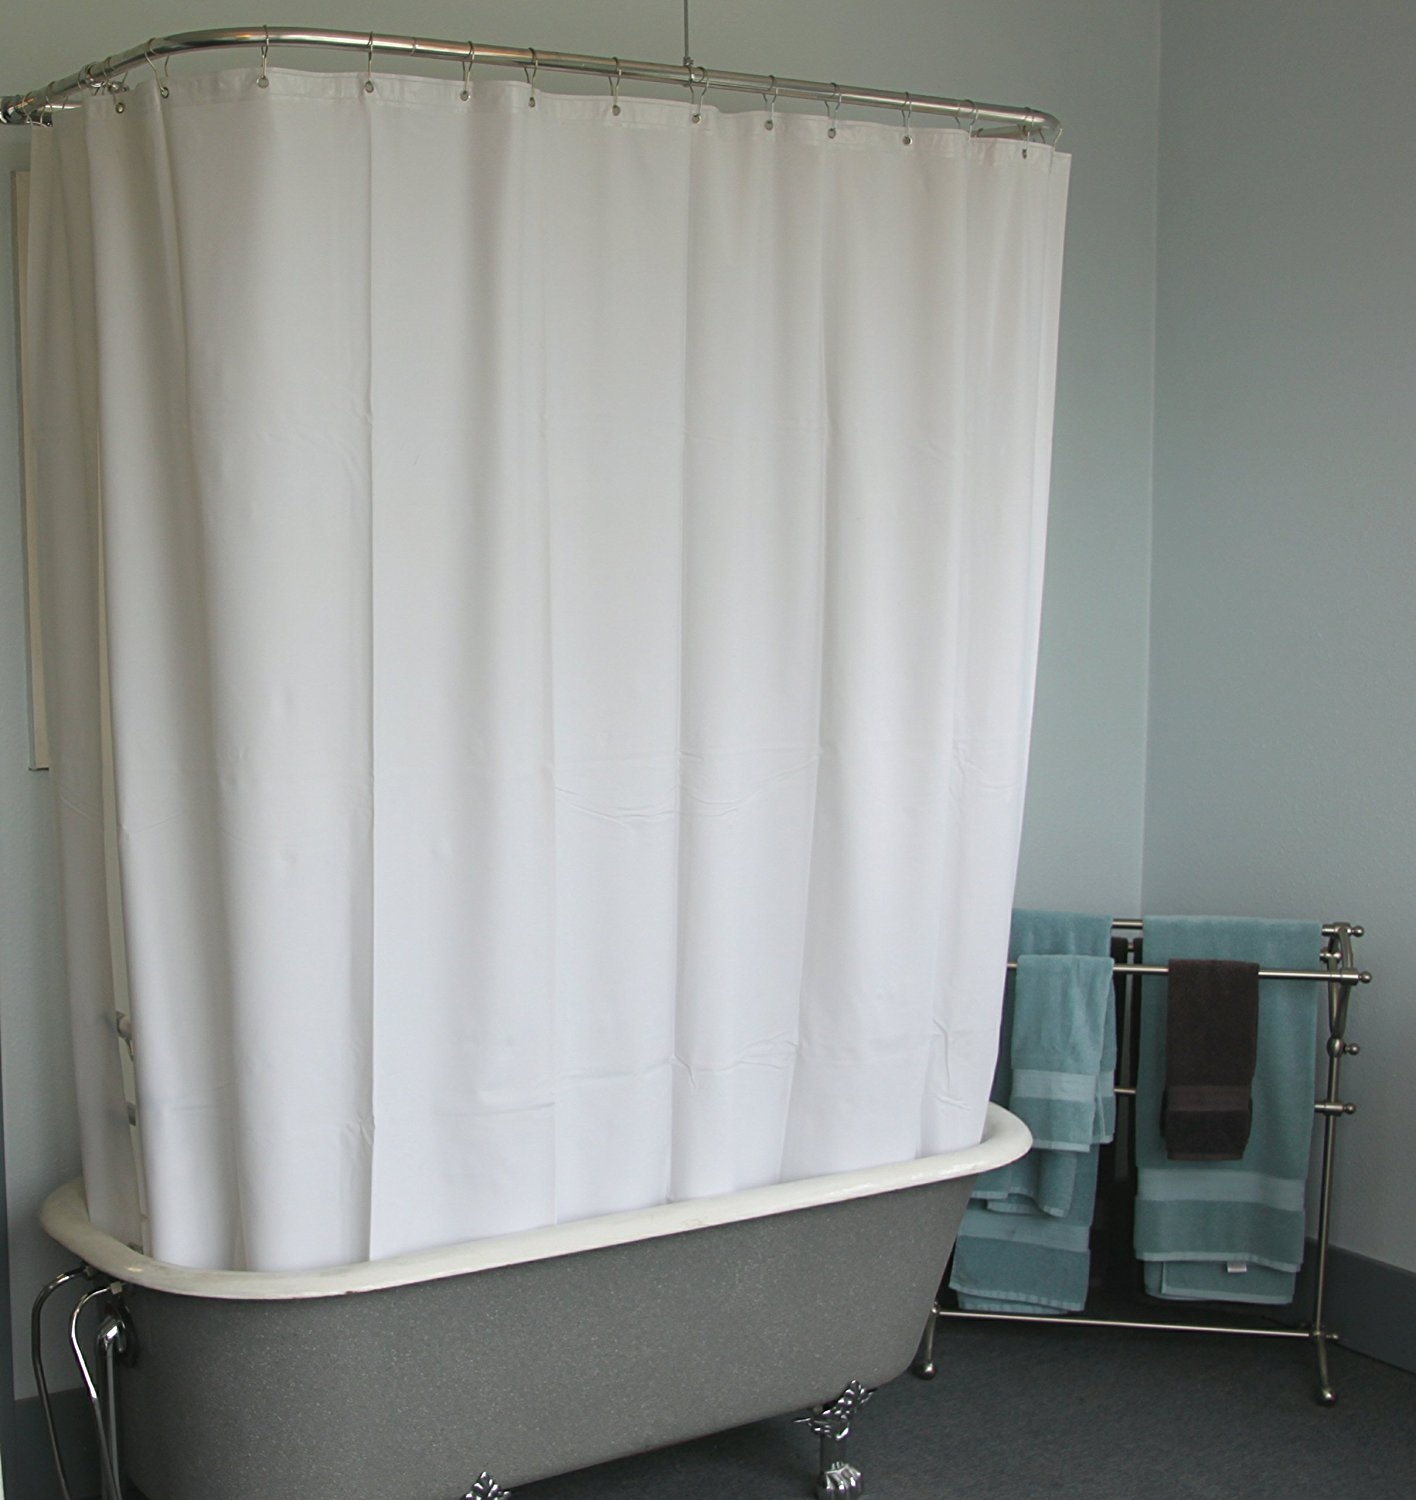 Amazon Extra Wide Vinyl Shower Curtain For A Clawfoot Tub Throughout Claw Tub Shower Curtains (Image 3 of 25)